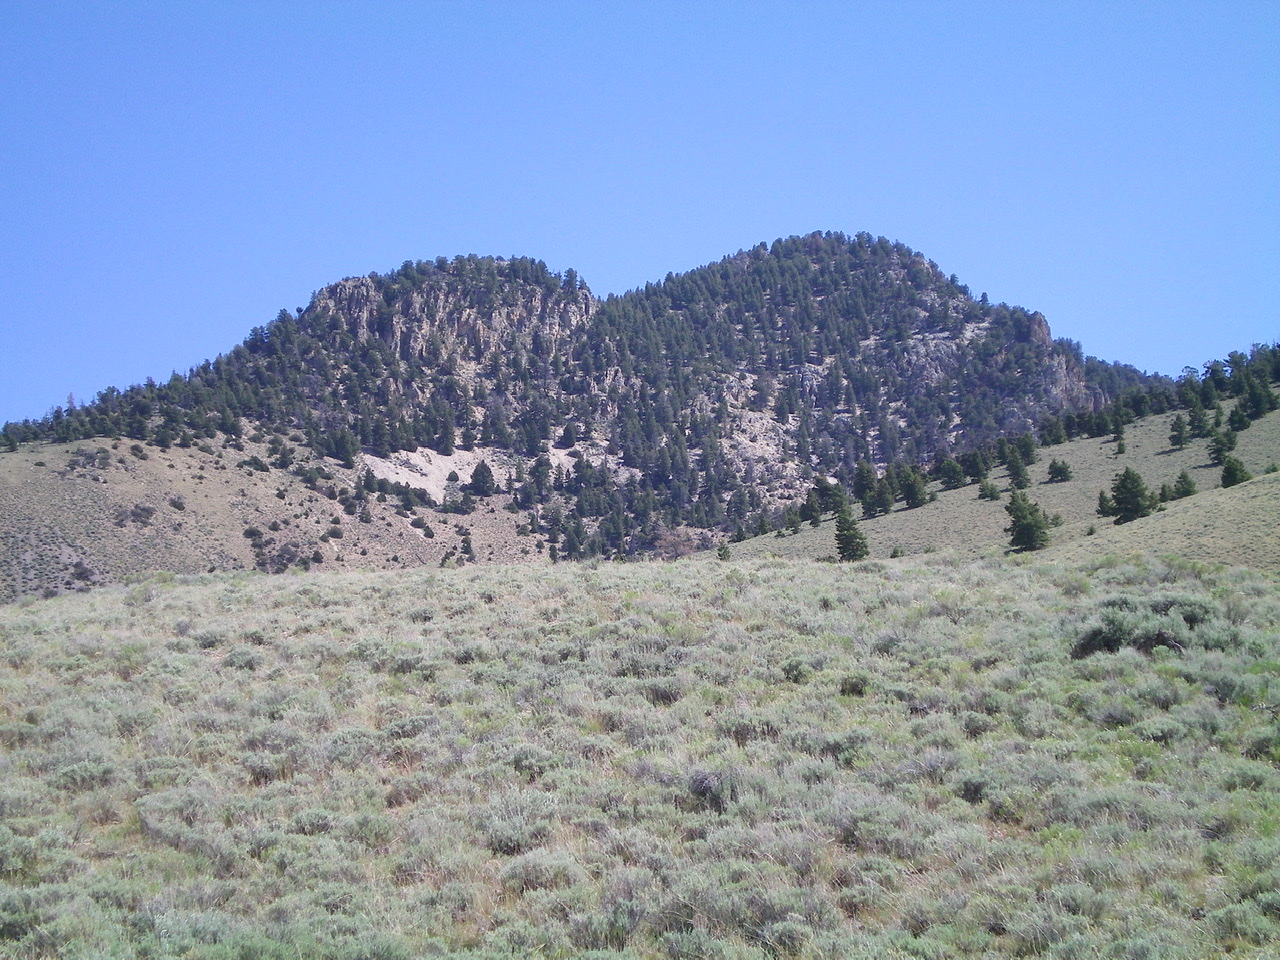 Foss Mountain as viewed from the sagebrush at the mouth of the canyon WSW of the peak. The right hump is the summit. The left hump is a bump on the West Ridge. Livingston Douglas Photo